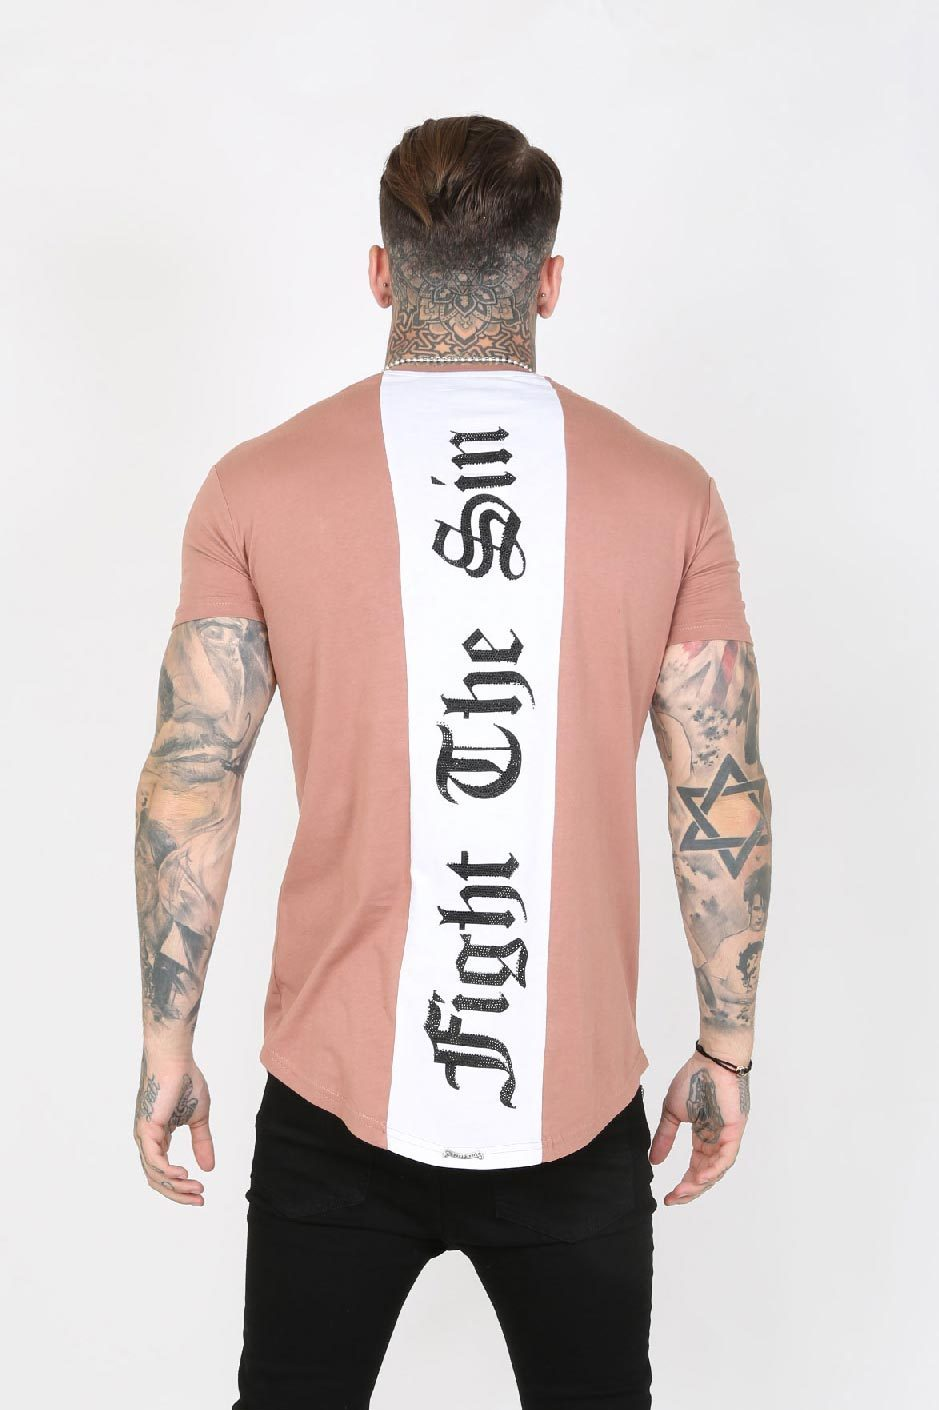 Judas Sinned Slam Crystal Back Stripe Men's T-Shirt - Peach - Judas Sinned Clothing